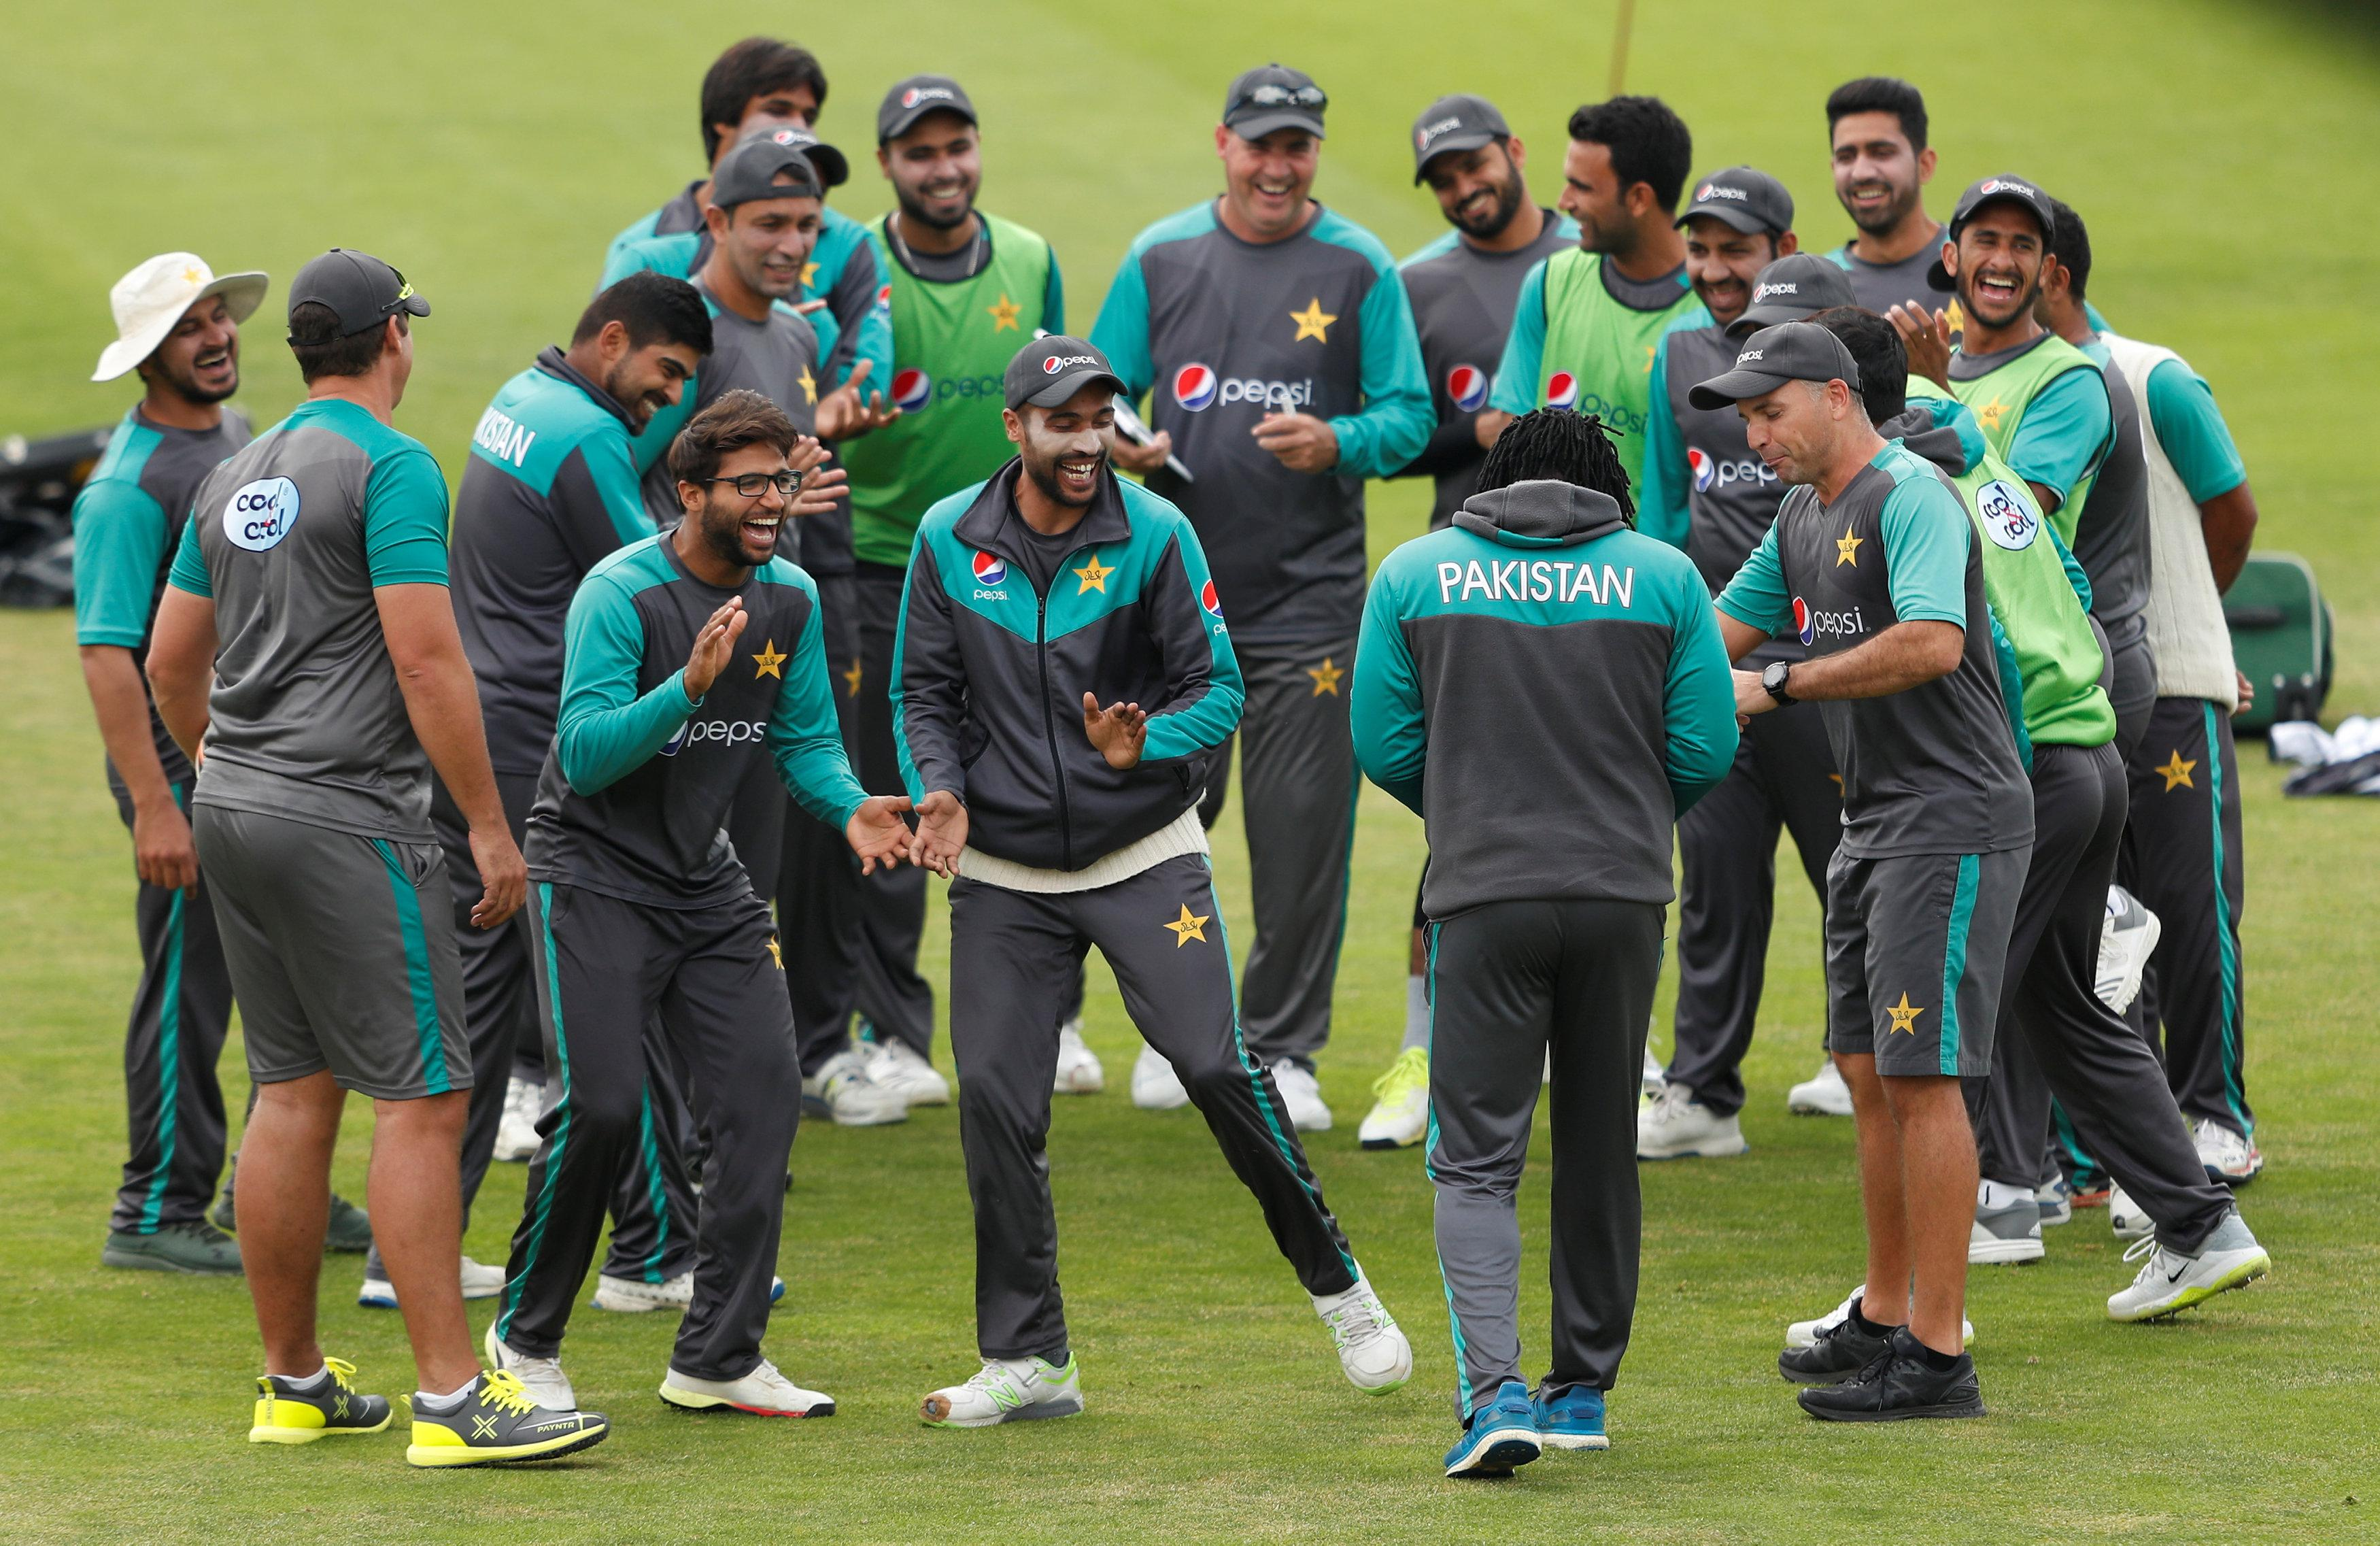 Pakistan are buoyed by their impressive victory at Lord's in the first Test